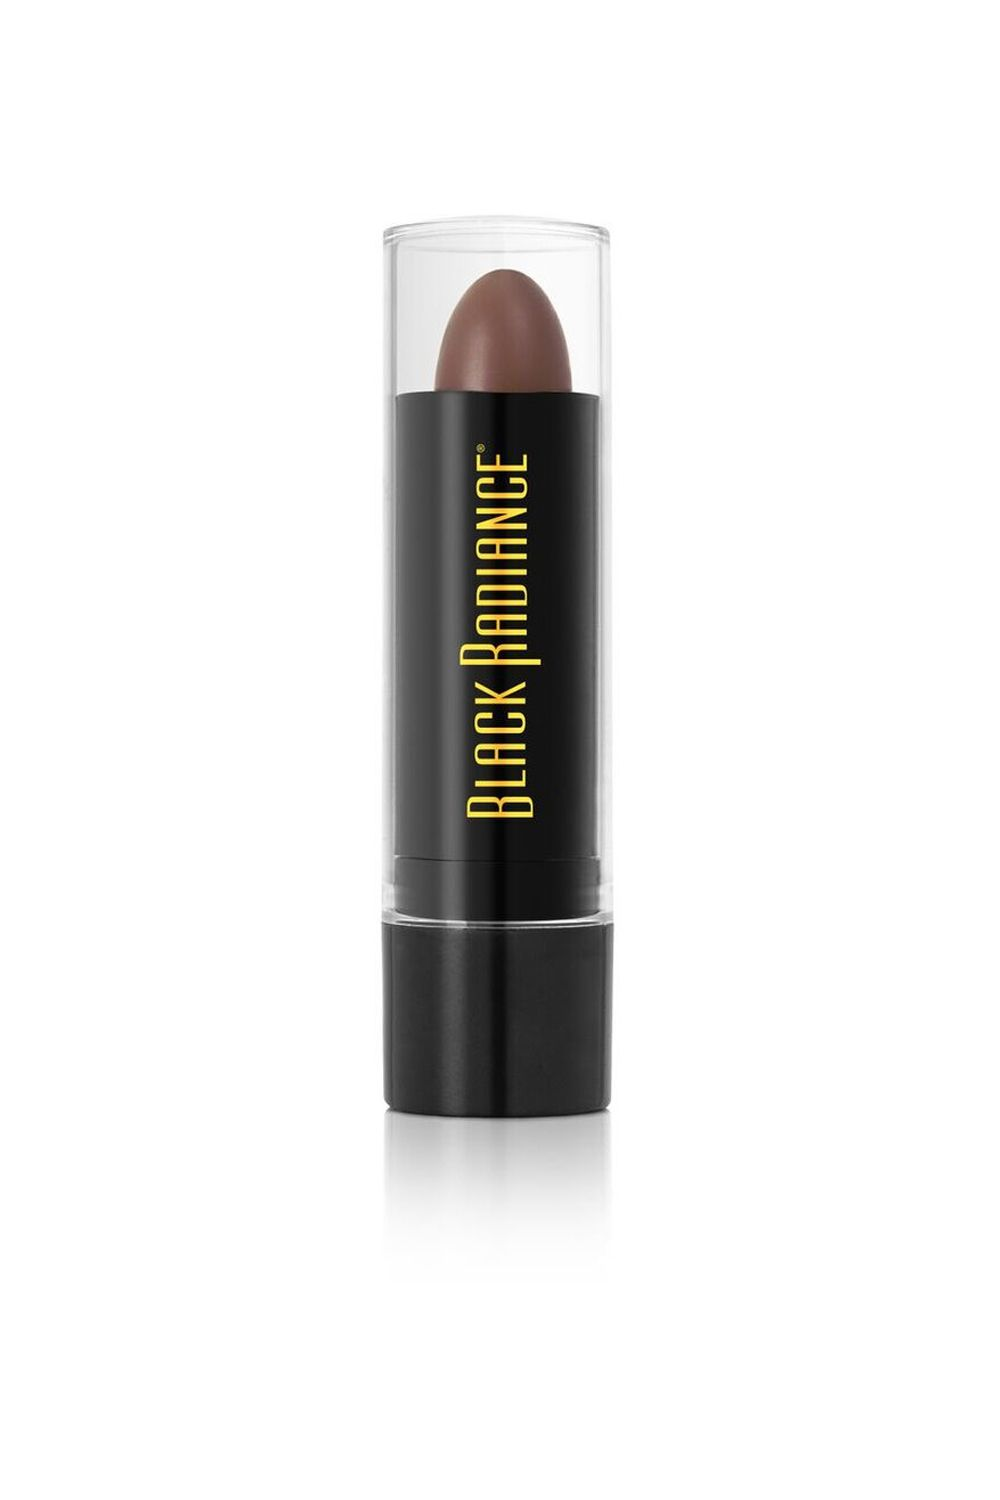 Normally, concealers and under-eyes don't mix, thanks to the zillion fine lines that magically appear as soon as you swipe one on, but this creamy stick glides over dark circles without caking into creases, thanks to the castor seed oil in itsformula.   Black Radiance Concealer Stick, $1.99   BUY IT: walmart.com.